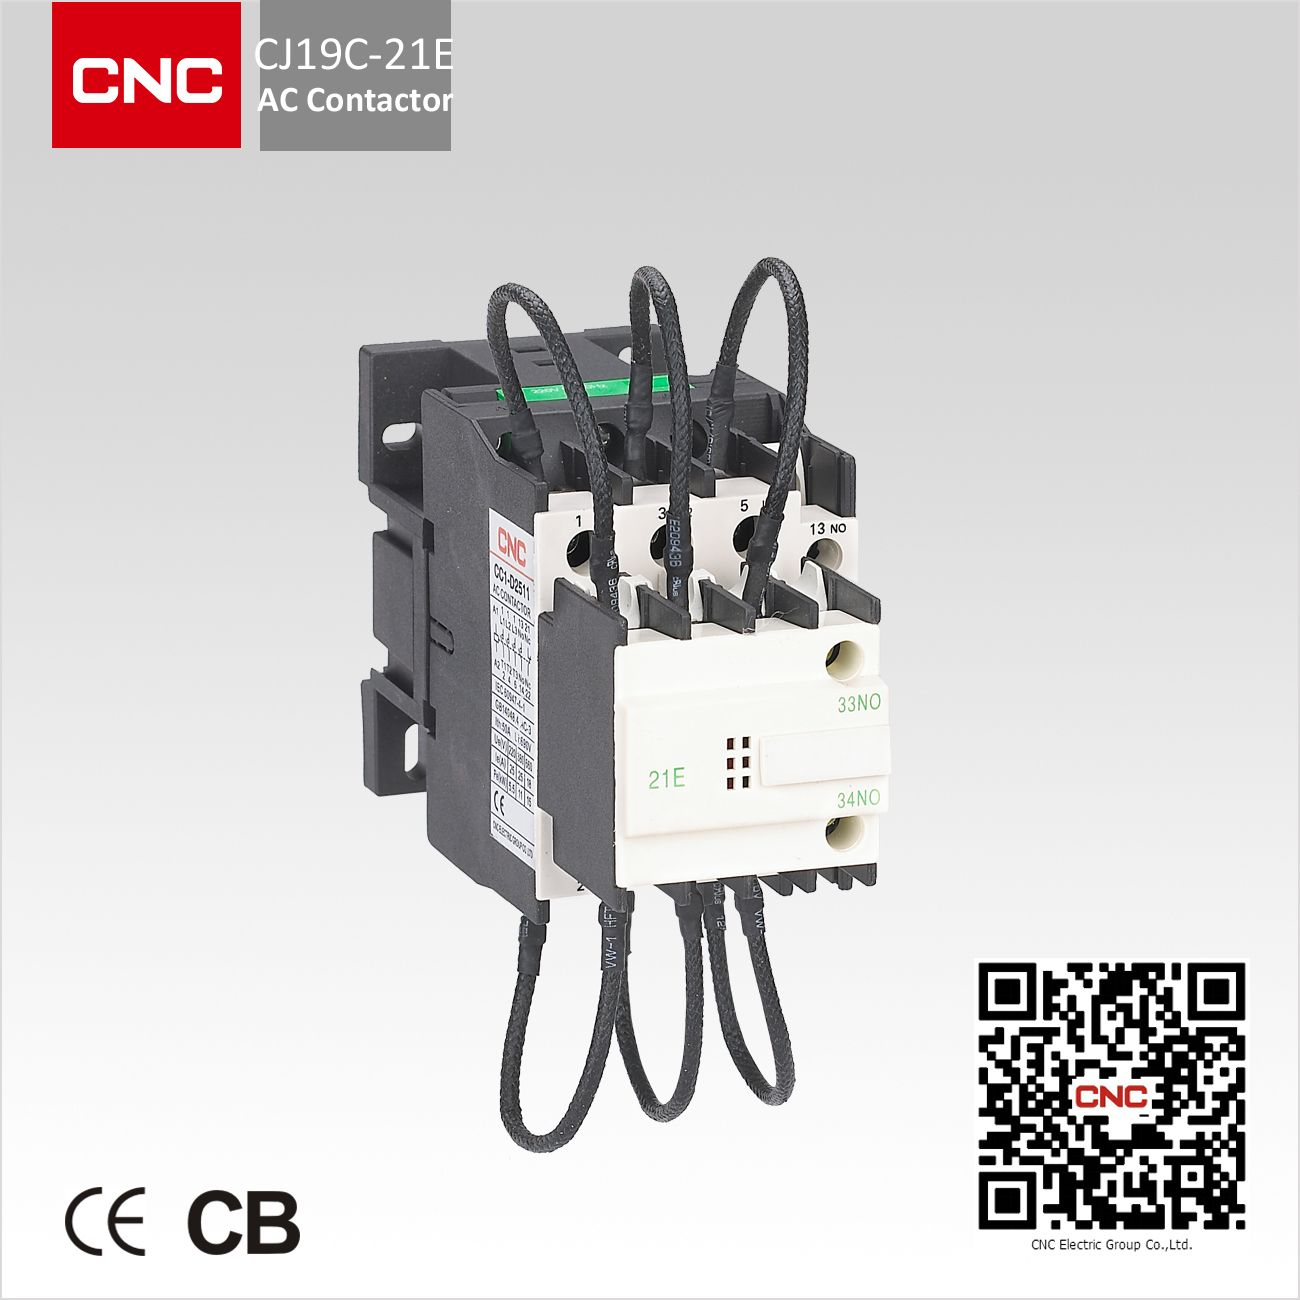 CJ19C Change Over Capacitor AC Contactor, rated voltage at